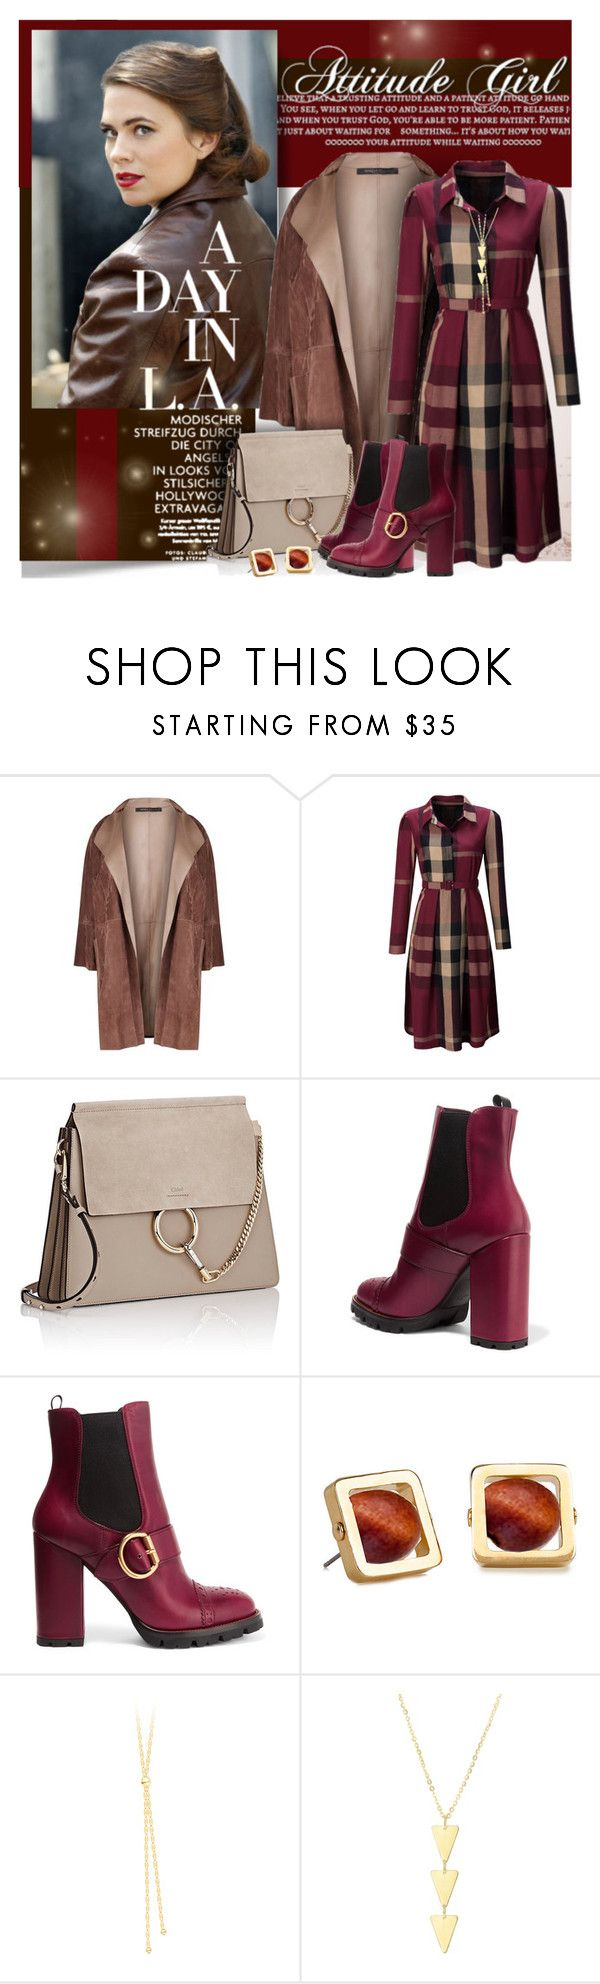 """""""Attitude Girl - Hayley Atwell"""" by petri5 ❤ liked on Polyvore featuring Marina Rinaldi, WithChic, Chloé, Prada and Lele Sadoughi"""